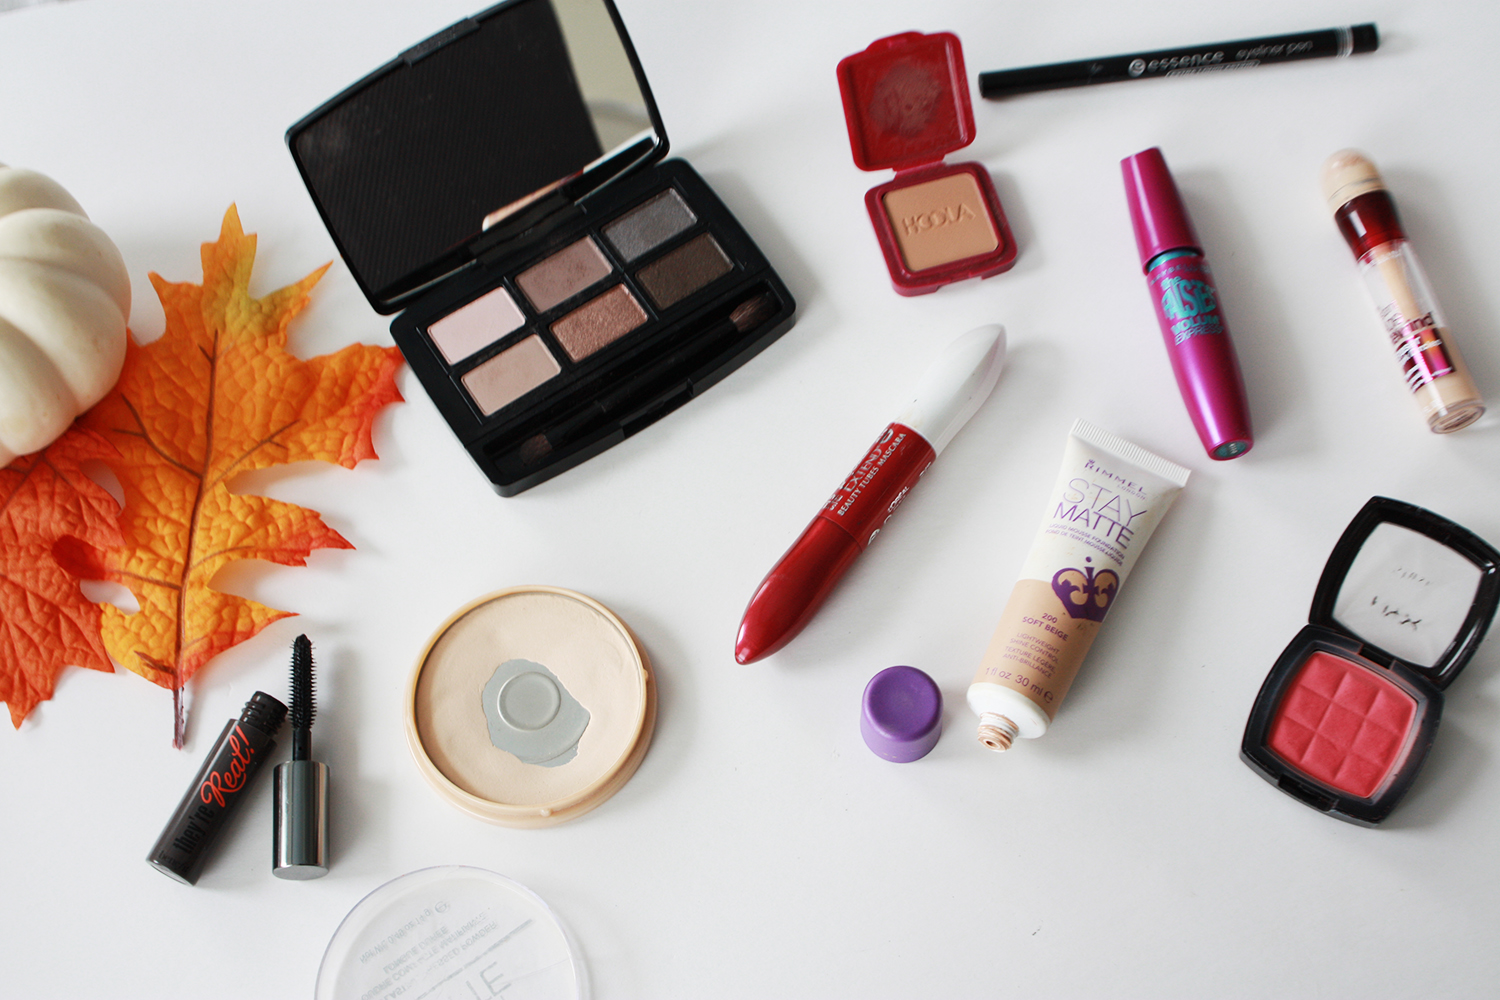 new makeup products 2015. my favorite makeup products that help me getting from scary to presentable the public. haha! new 2015